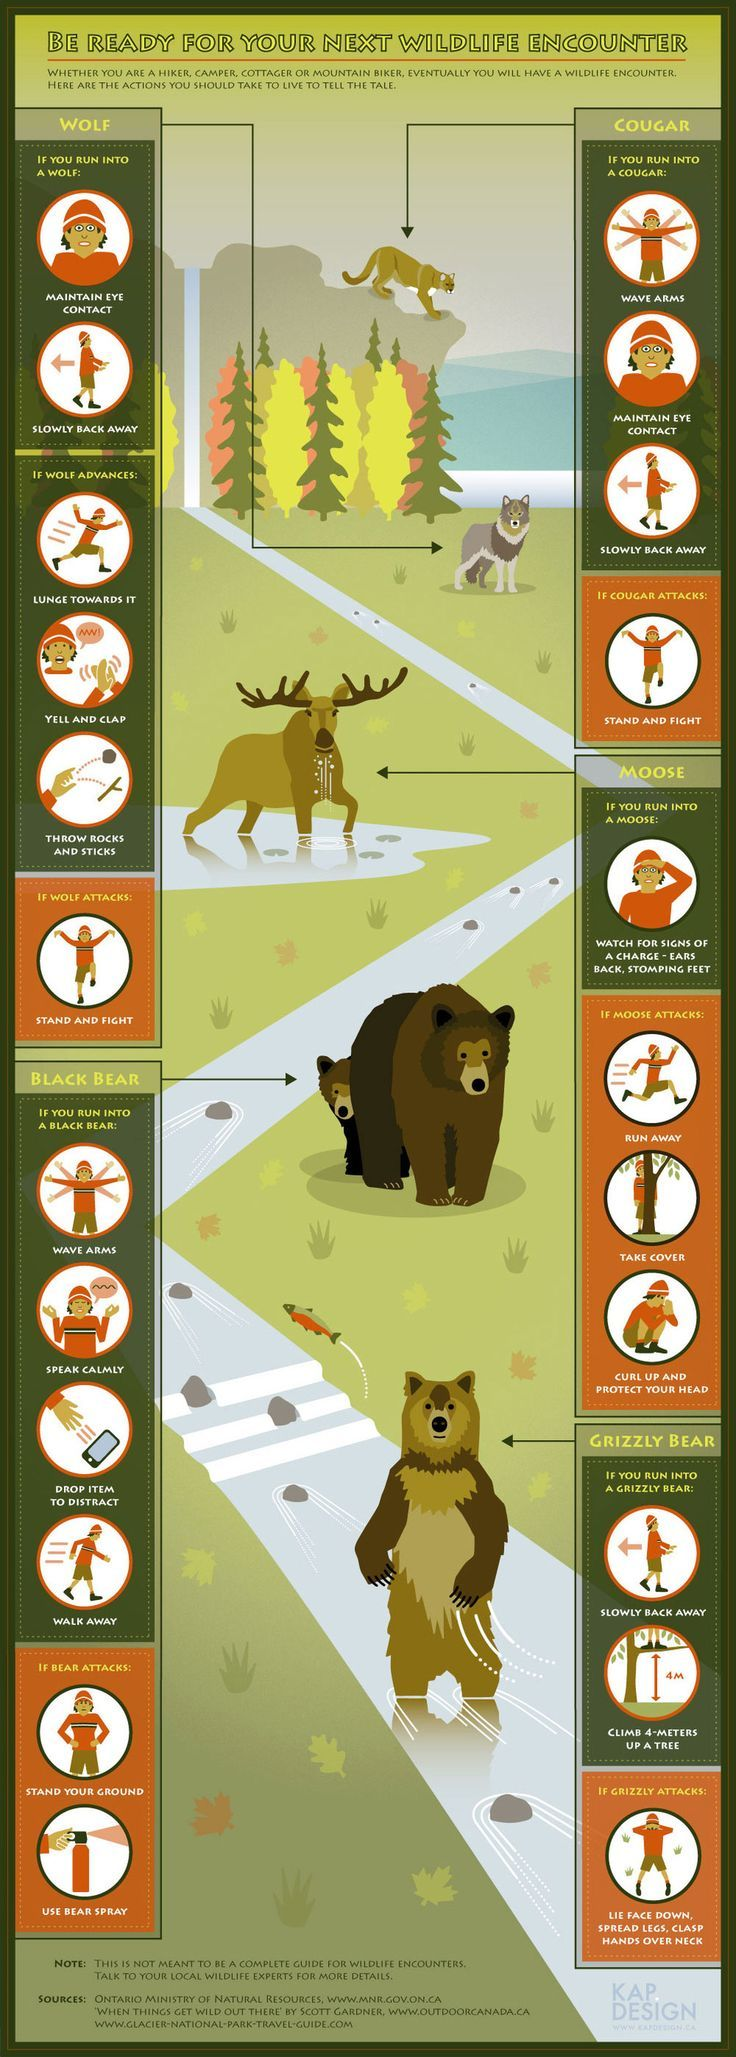 How to React to a Wildlife Encounter @Brittney Redding for Yellowstone lol